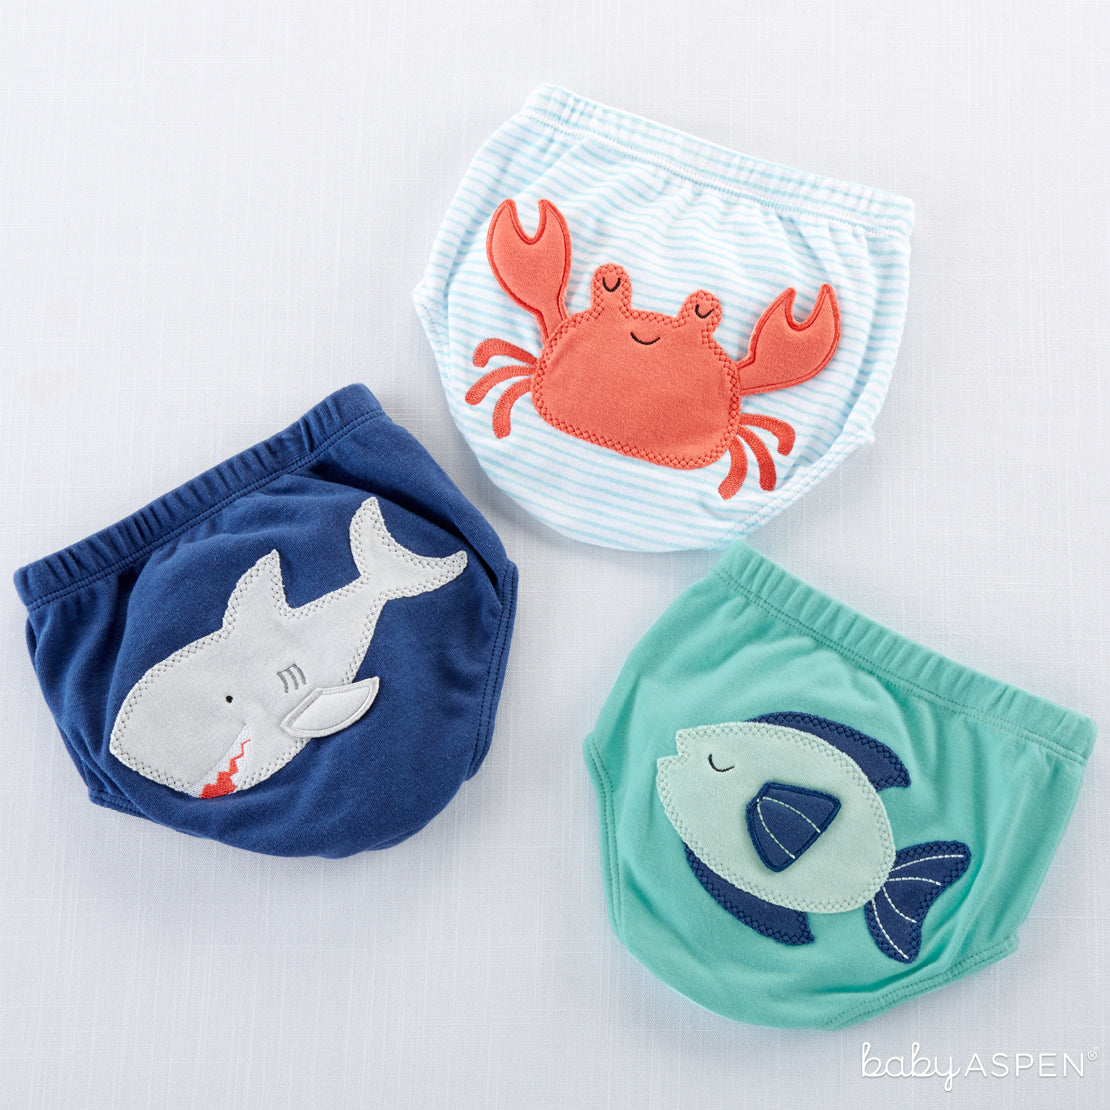 Assortment of Under The Sea 3-piece Diaper Covers - Boy | Brilliant Beach Baby Gifts + A Giveaway | Baby Aspen